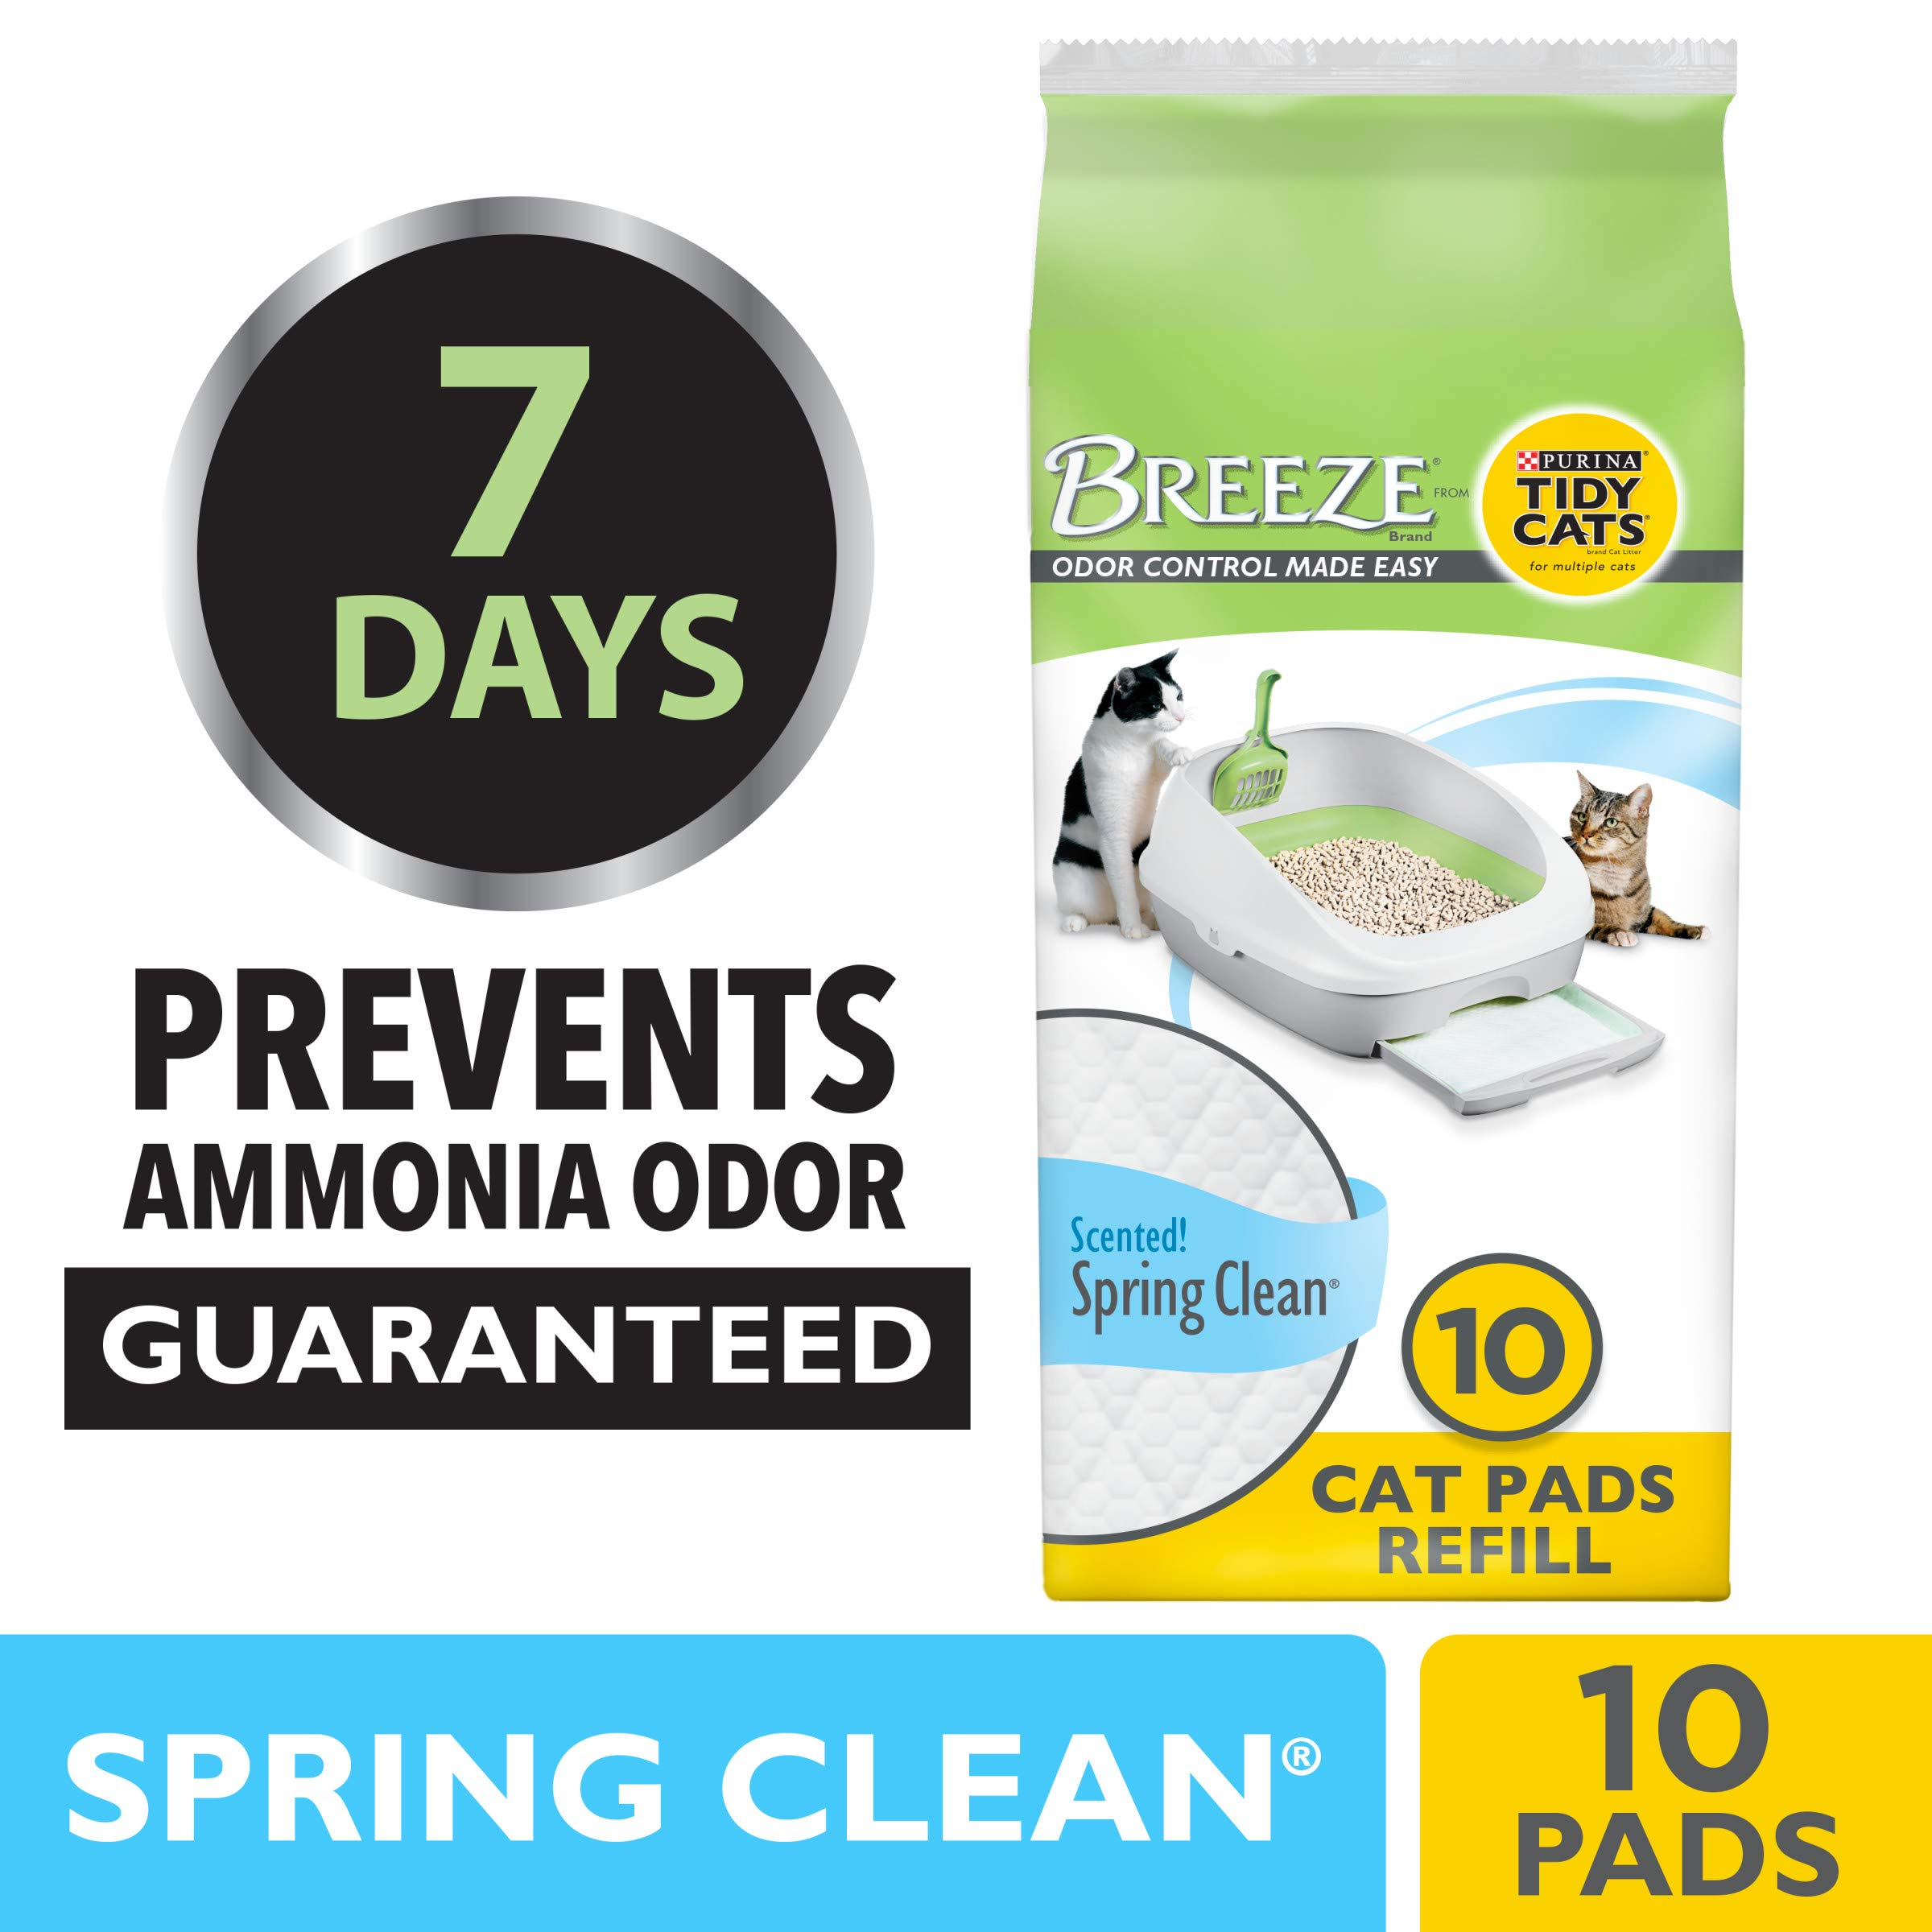 Purina Tidy Cats Cat Pads, BREEZE Spring Clean Fragranced Refill Pack - (6) 10 ct. Pouches by Purina Tidy Cats